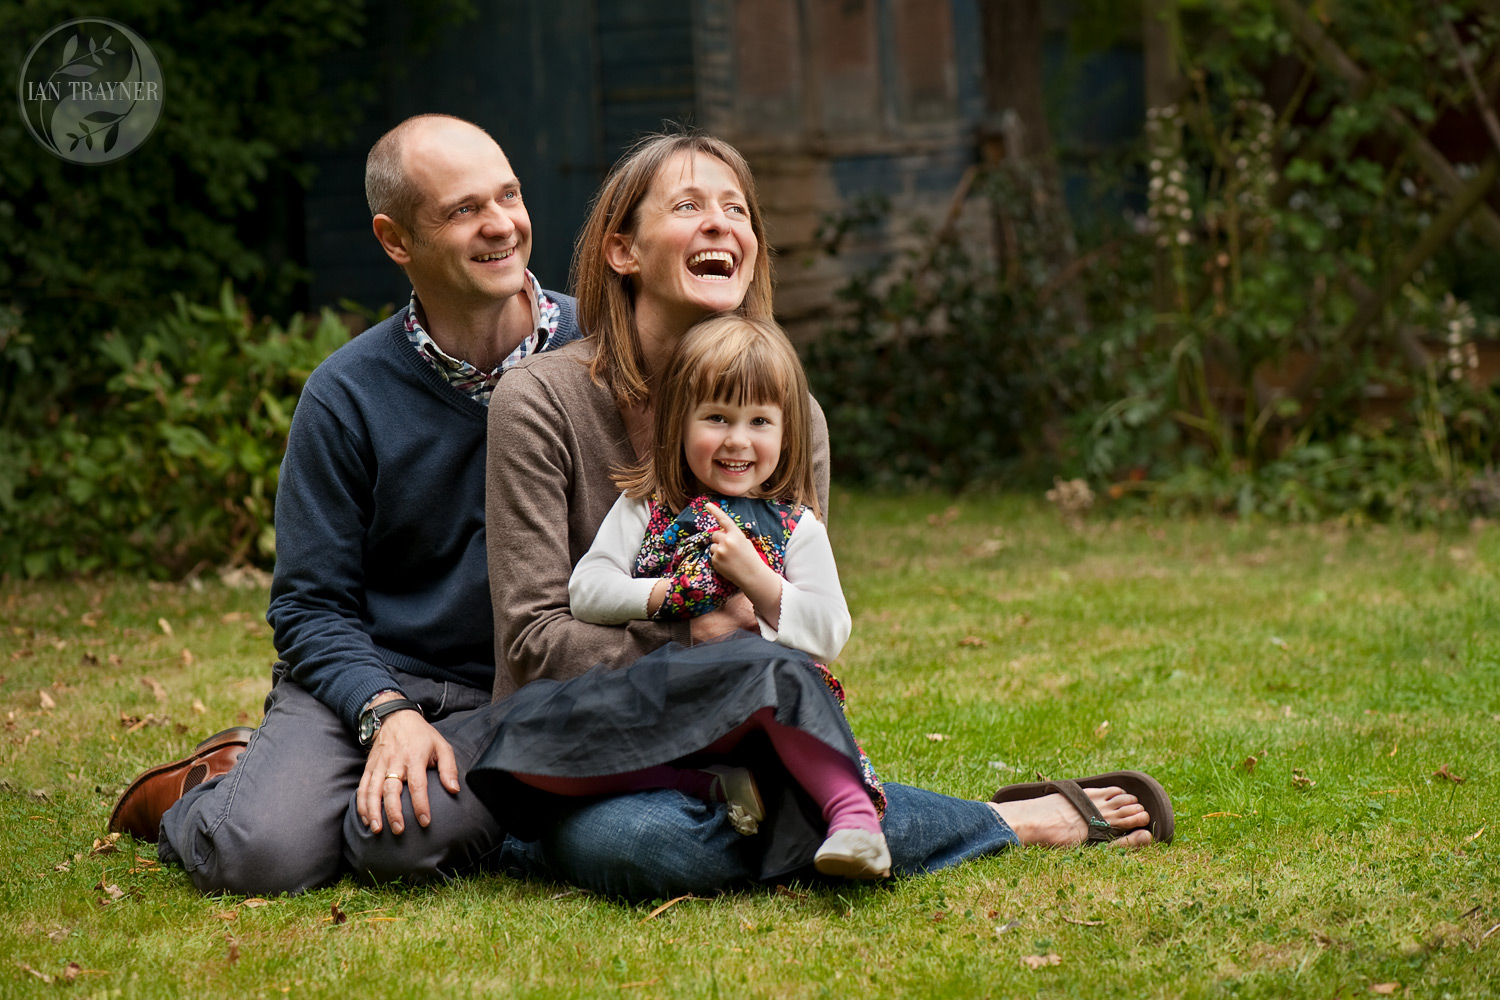 Happy family photography. Photo shoot in their garden.